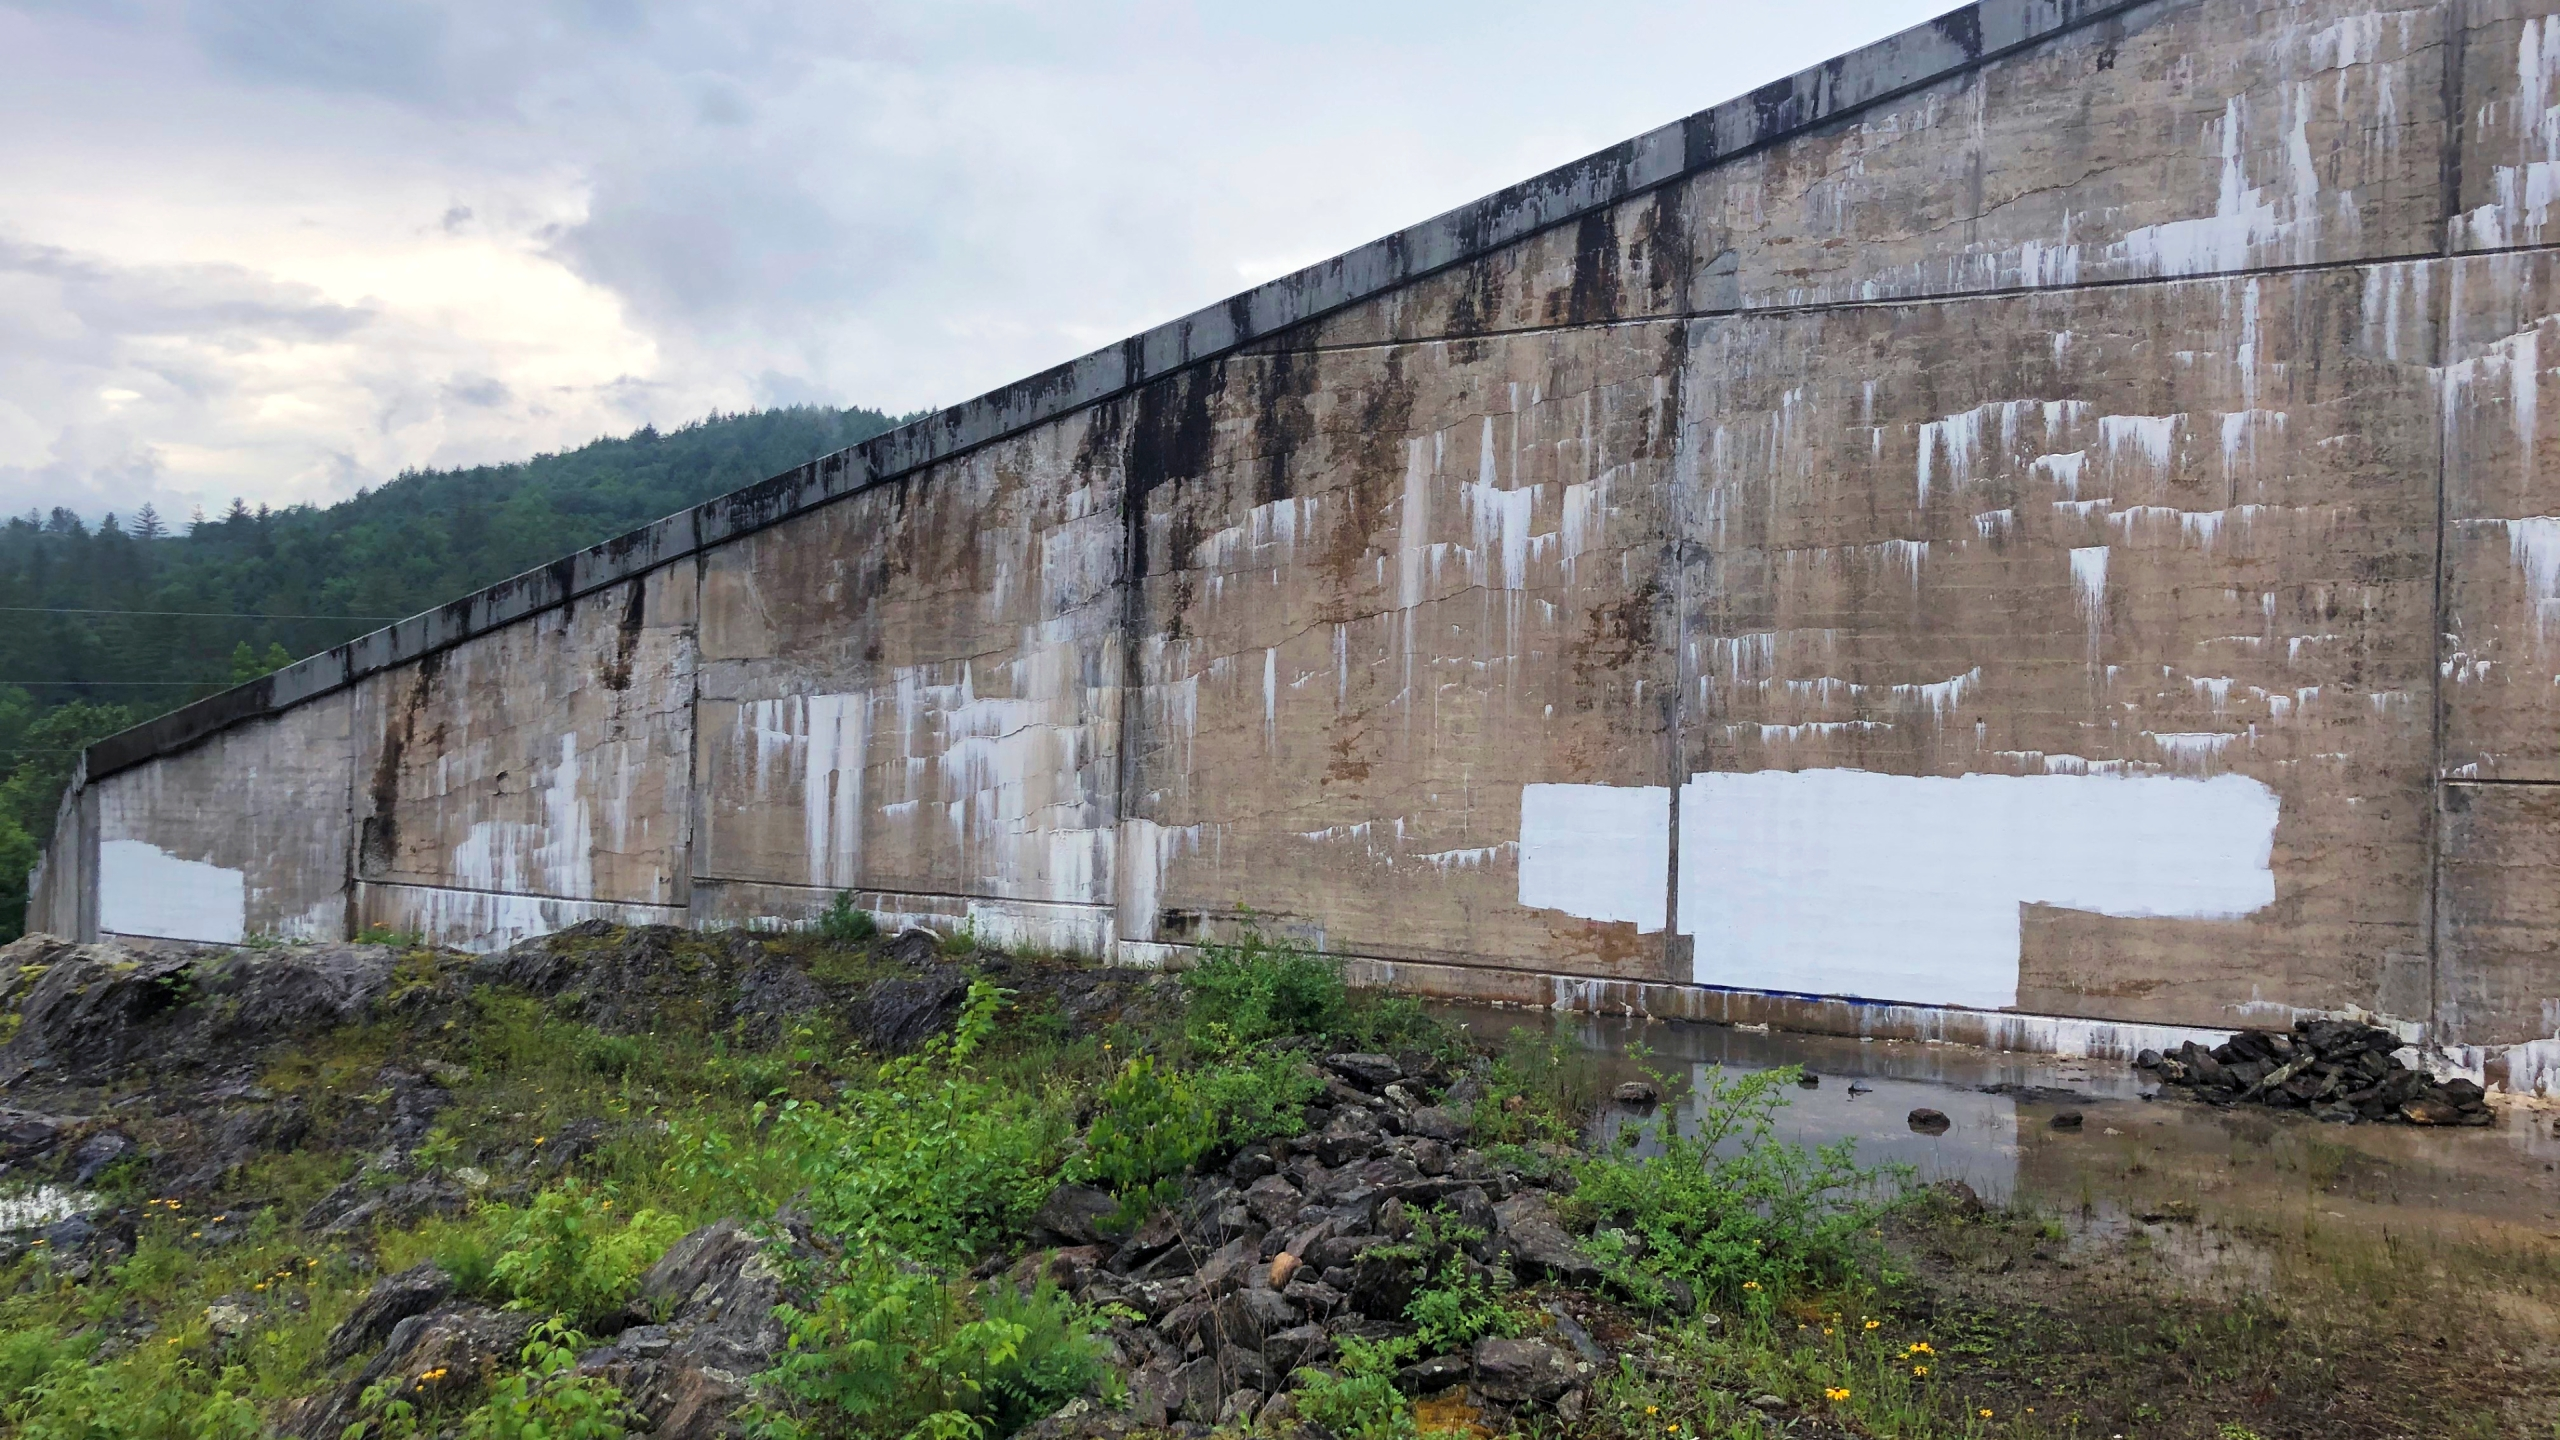 East side of the Waterbury Dam with white paint covering white supremacist graffiti.